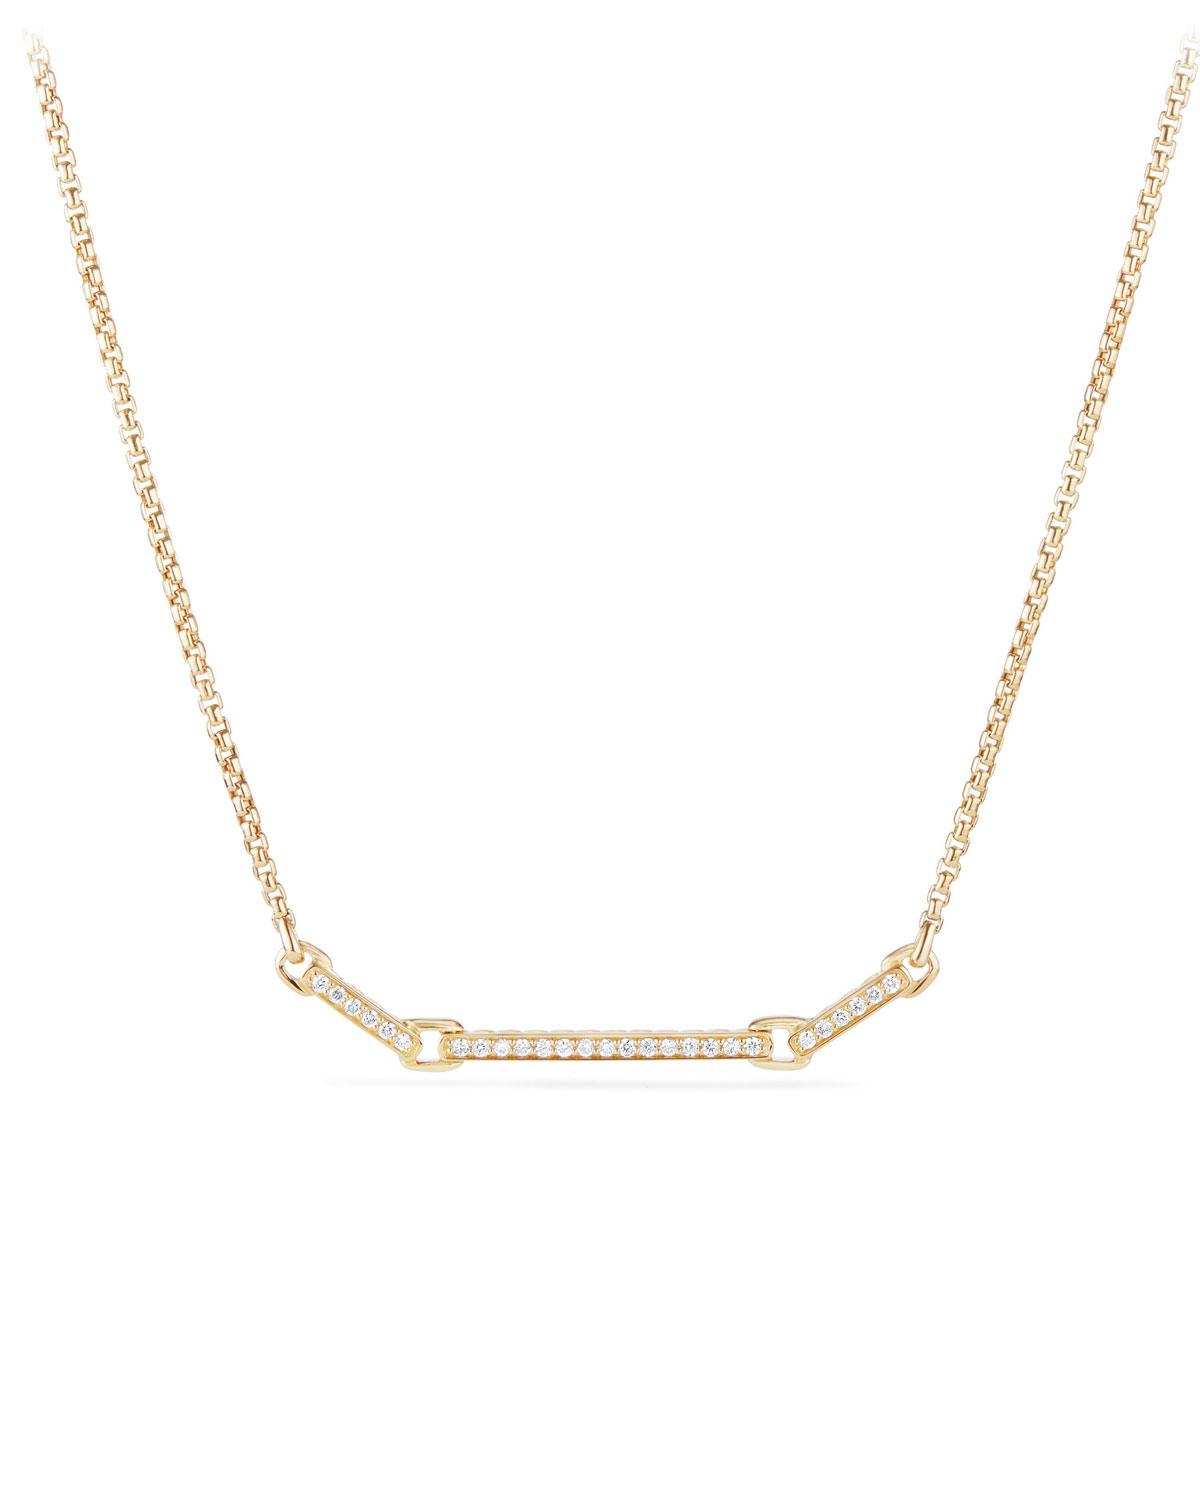 1bf873de521f David Yurman Petite Pave Diamond Bar Necklace in 18k Yellow Gold ...